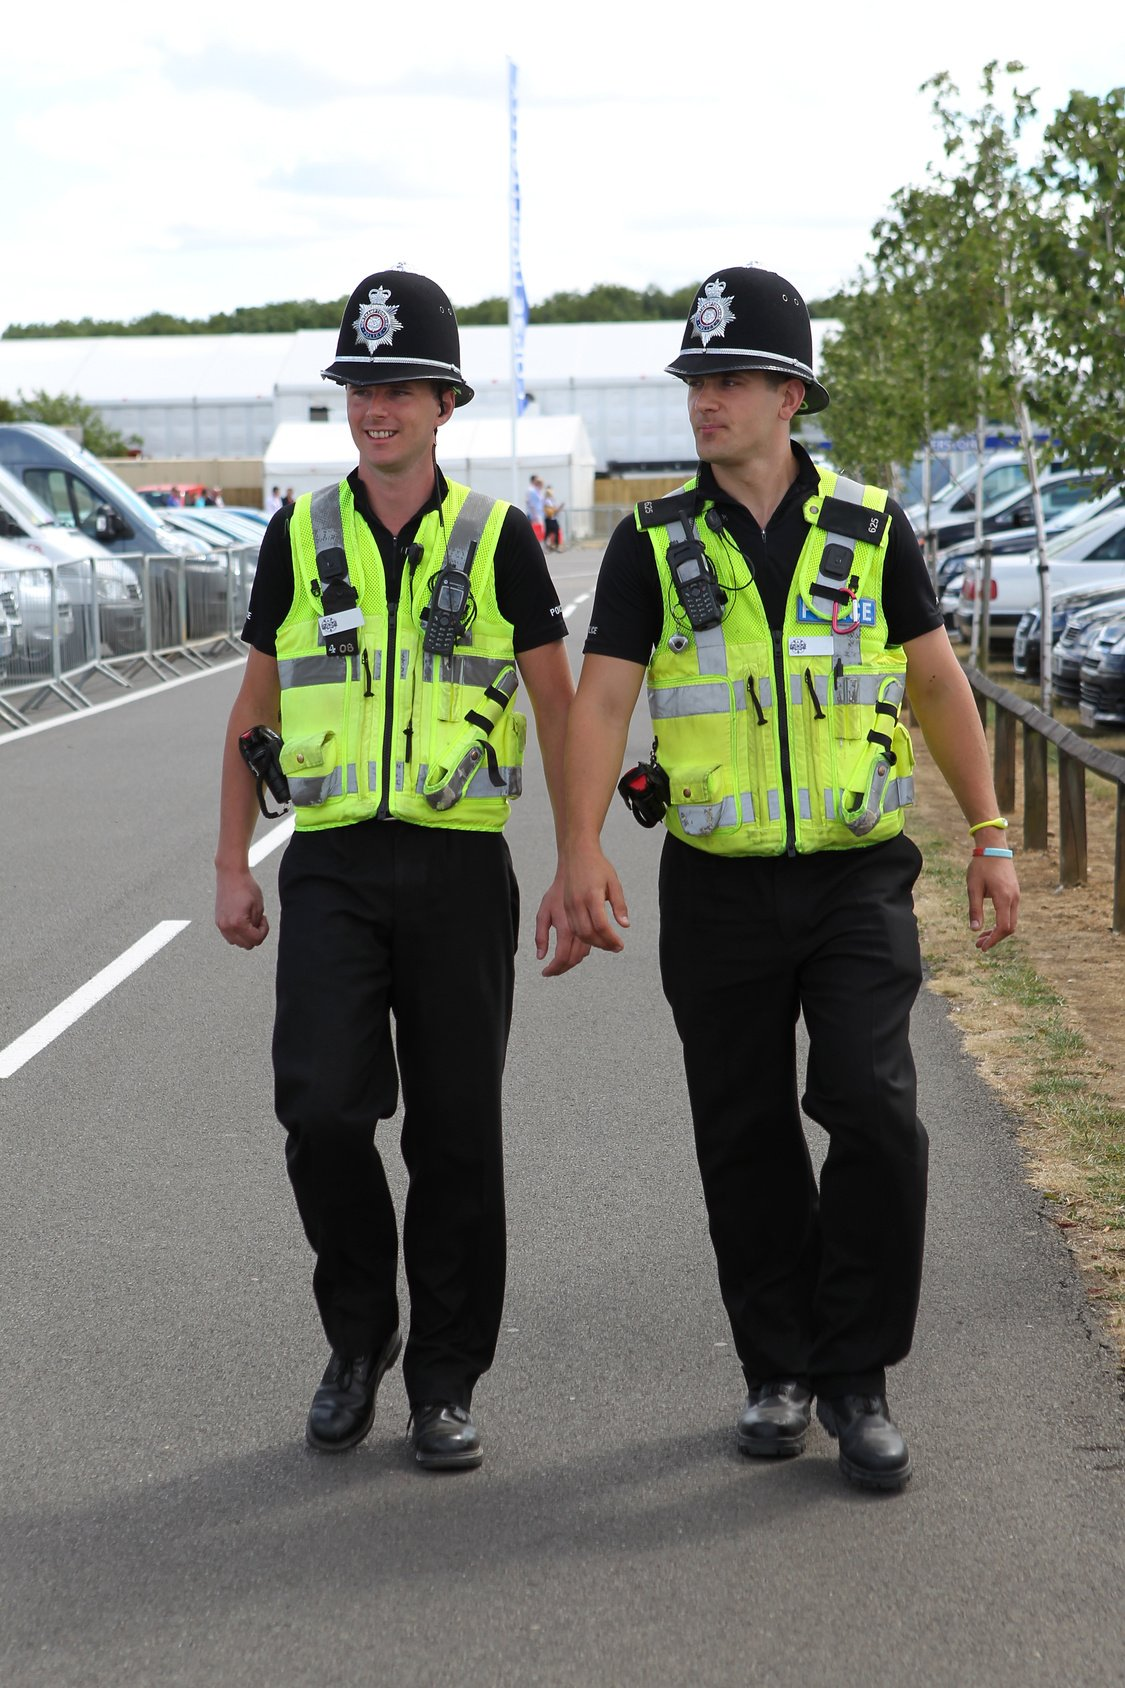 Two British Police Special Constables - How to Pass the Interview